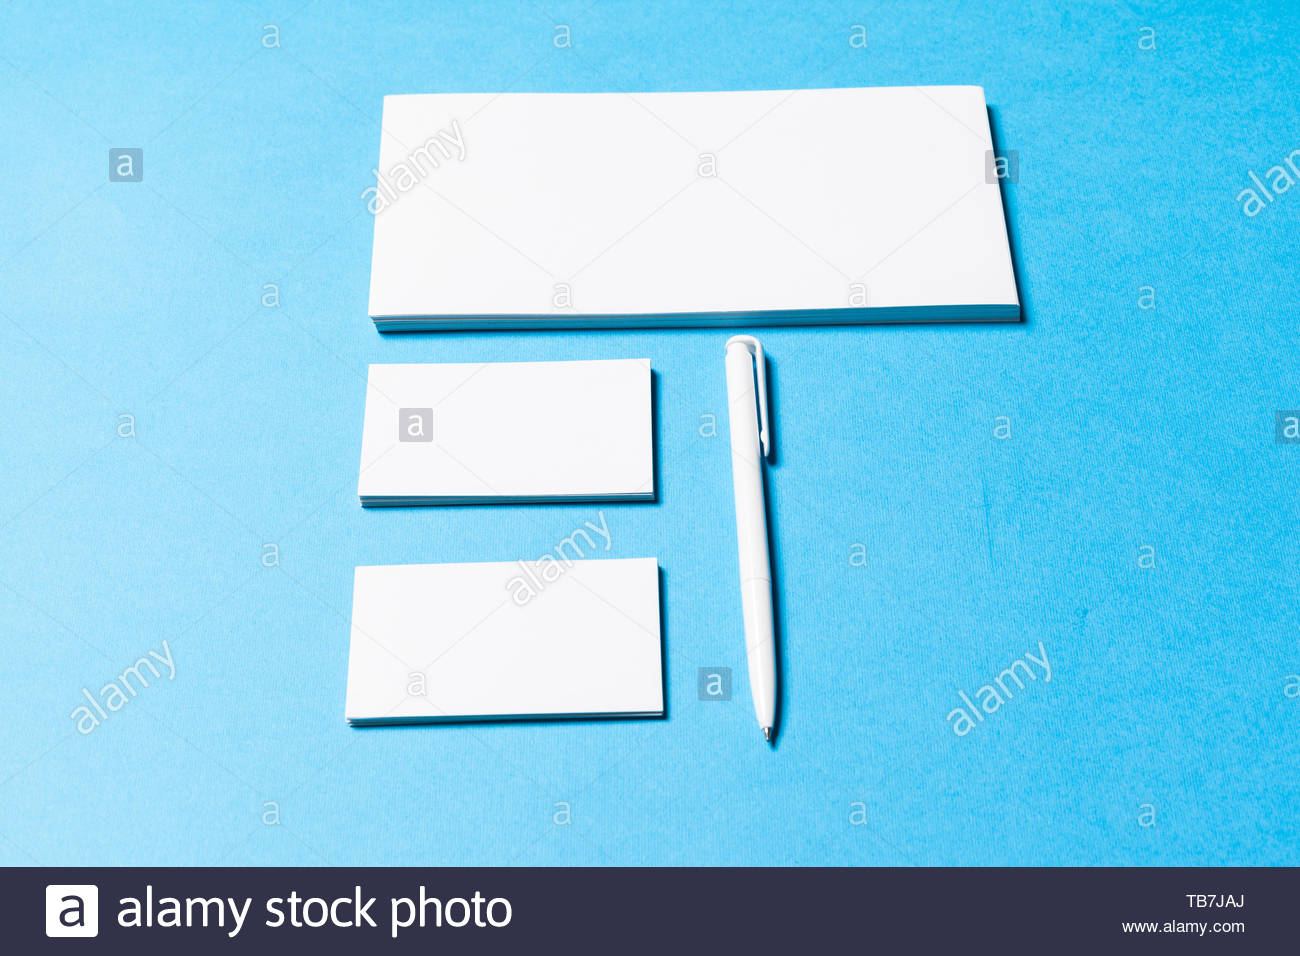 blank office objects organized for company presentation on blue 1300x956